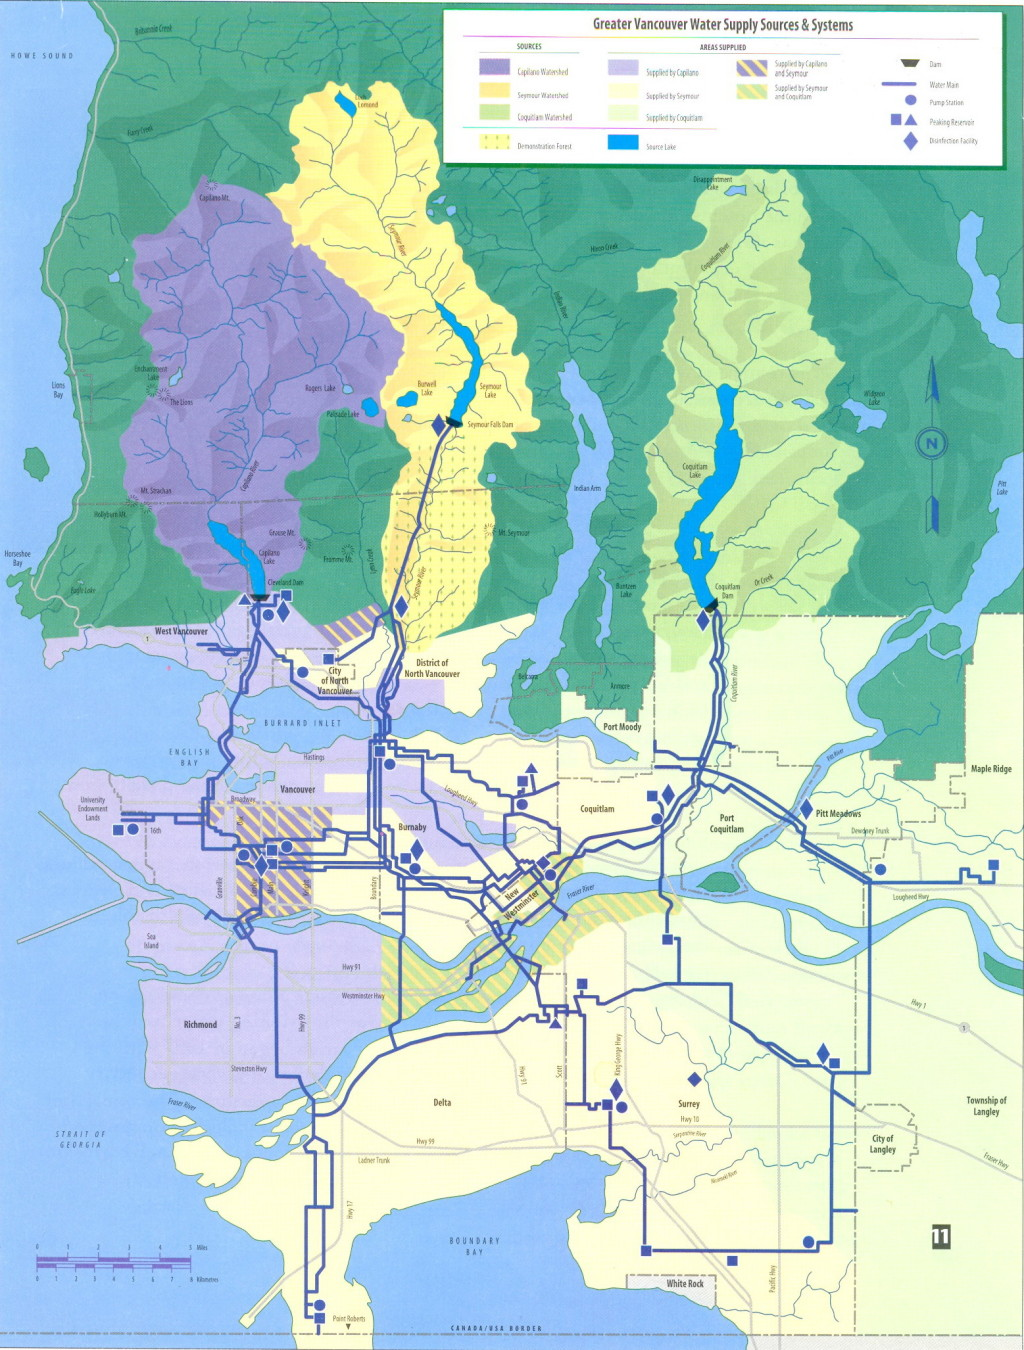 Metro Vancouver Water System